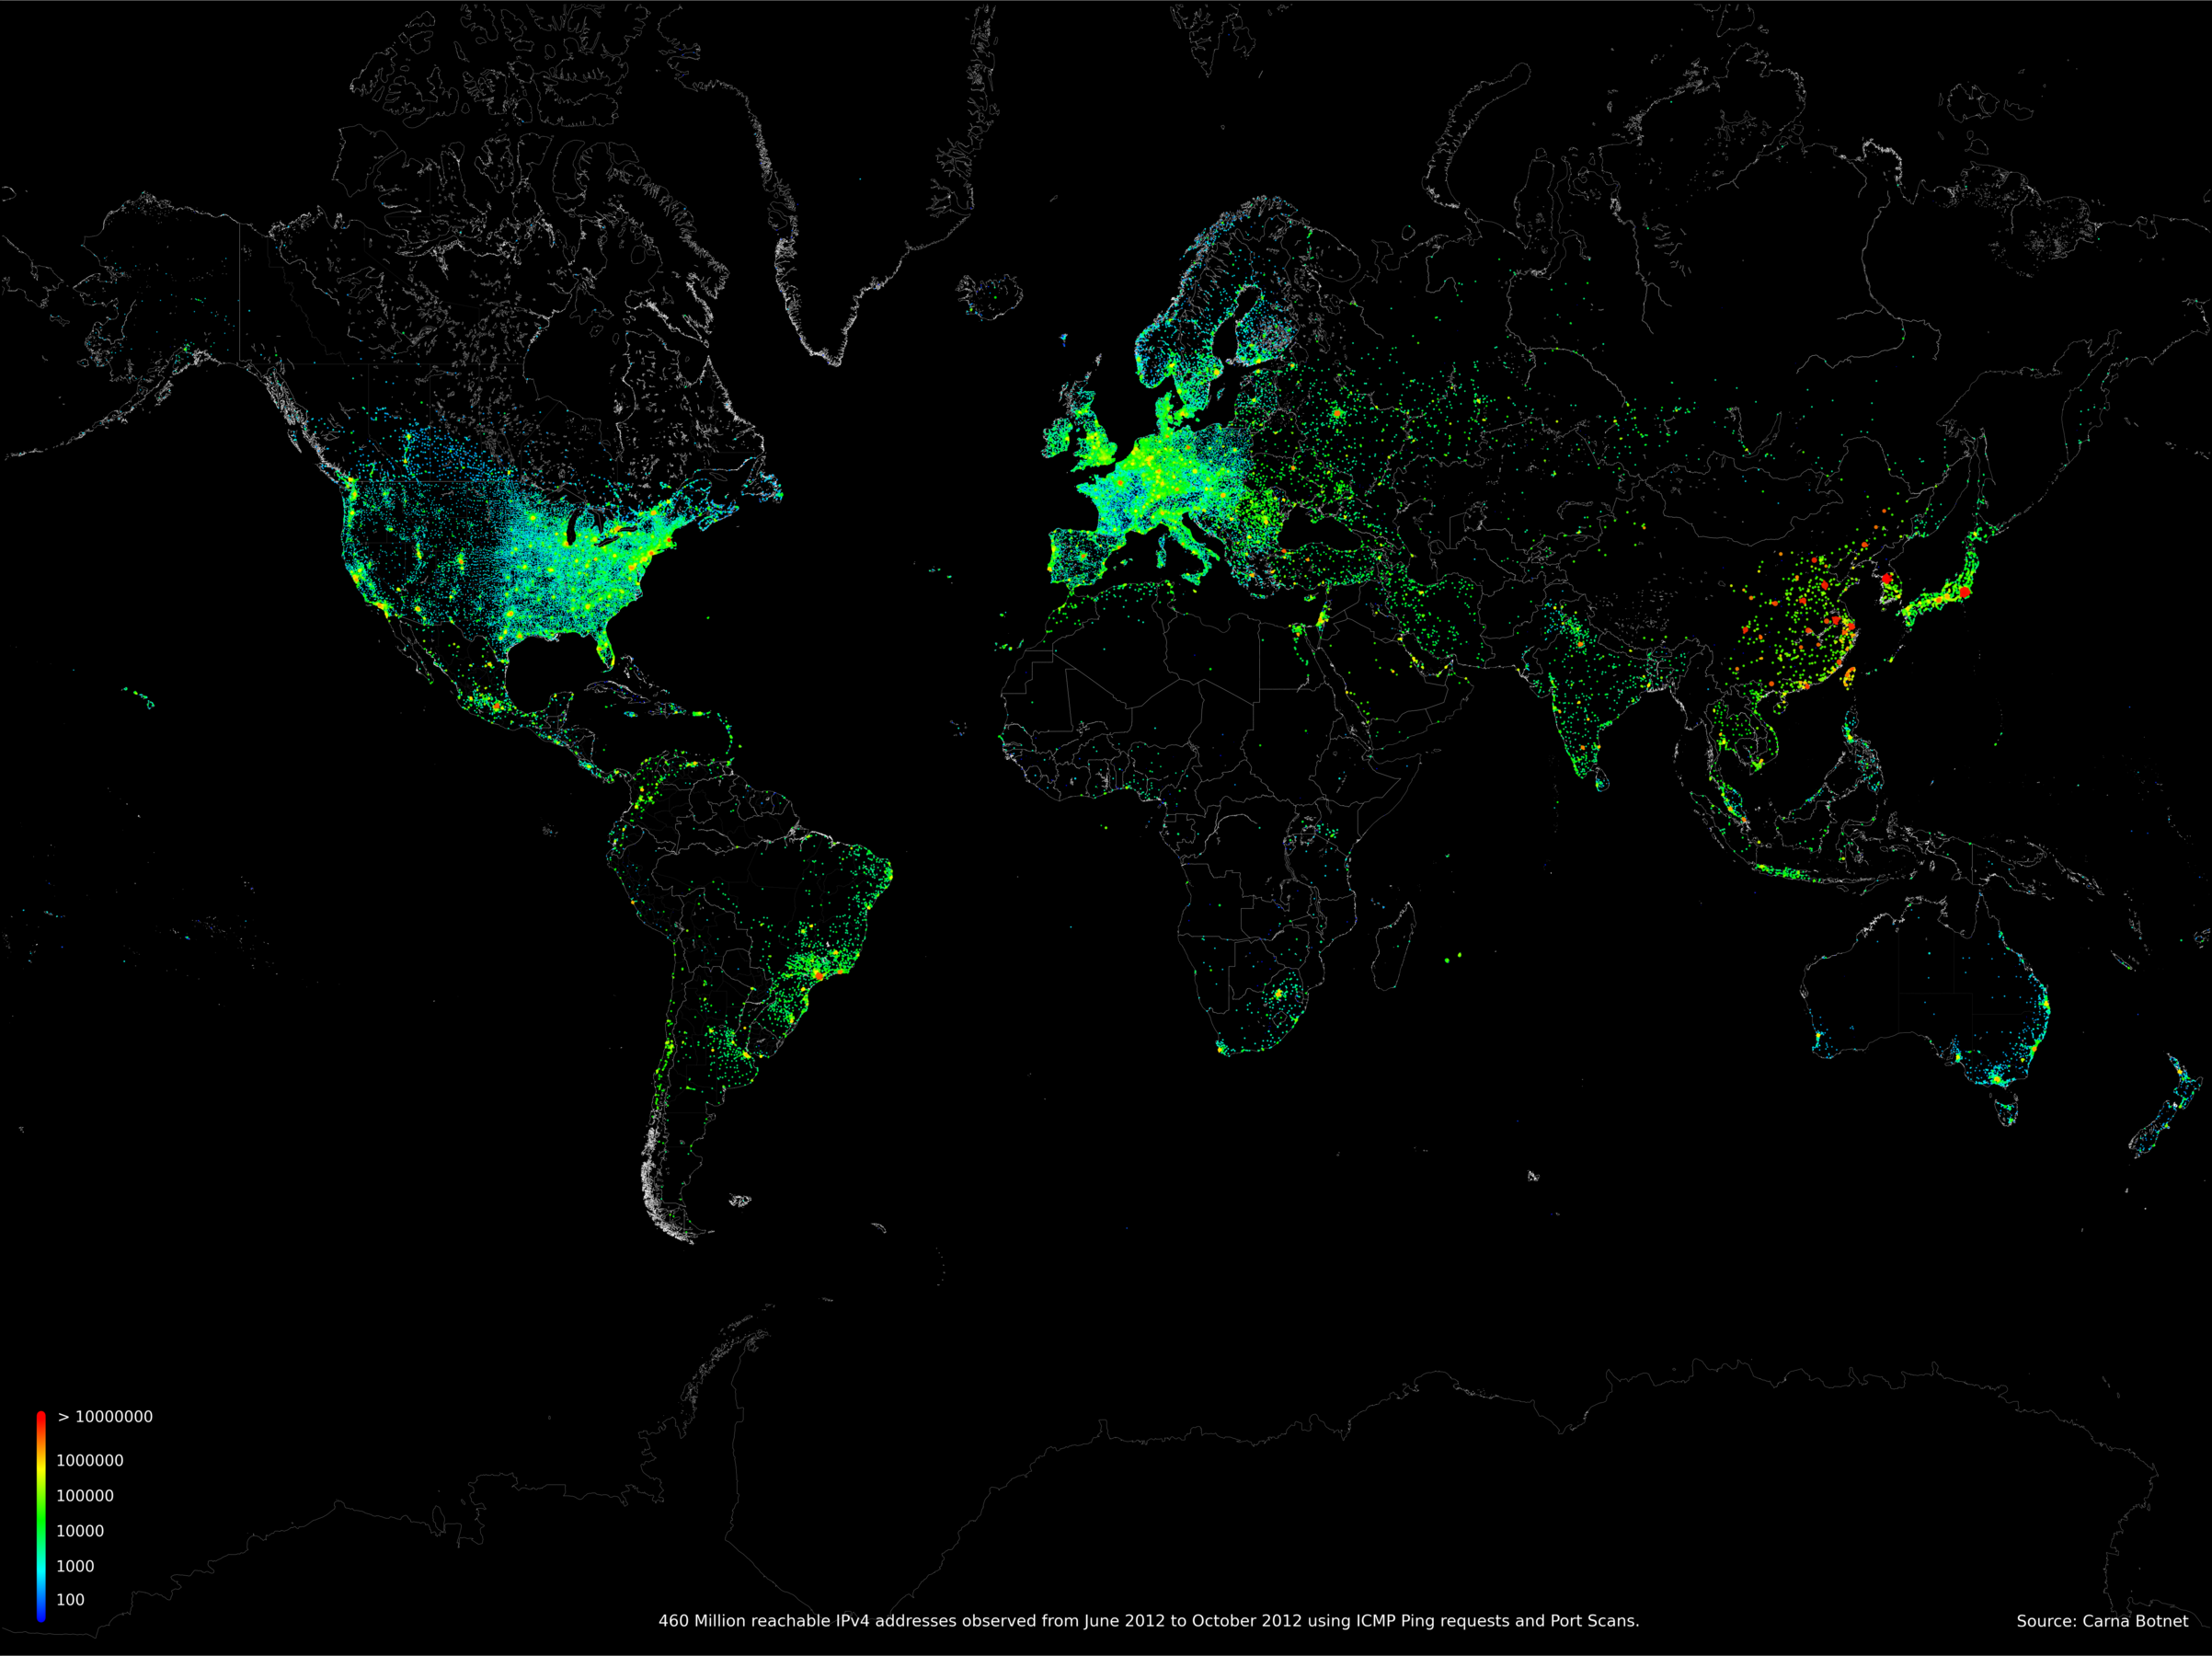 Mappa Internet Data Census 2012